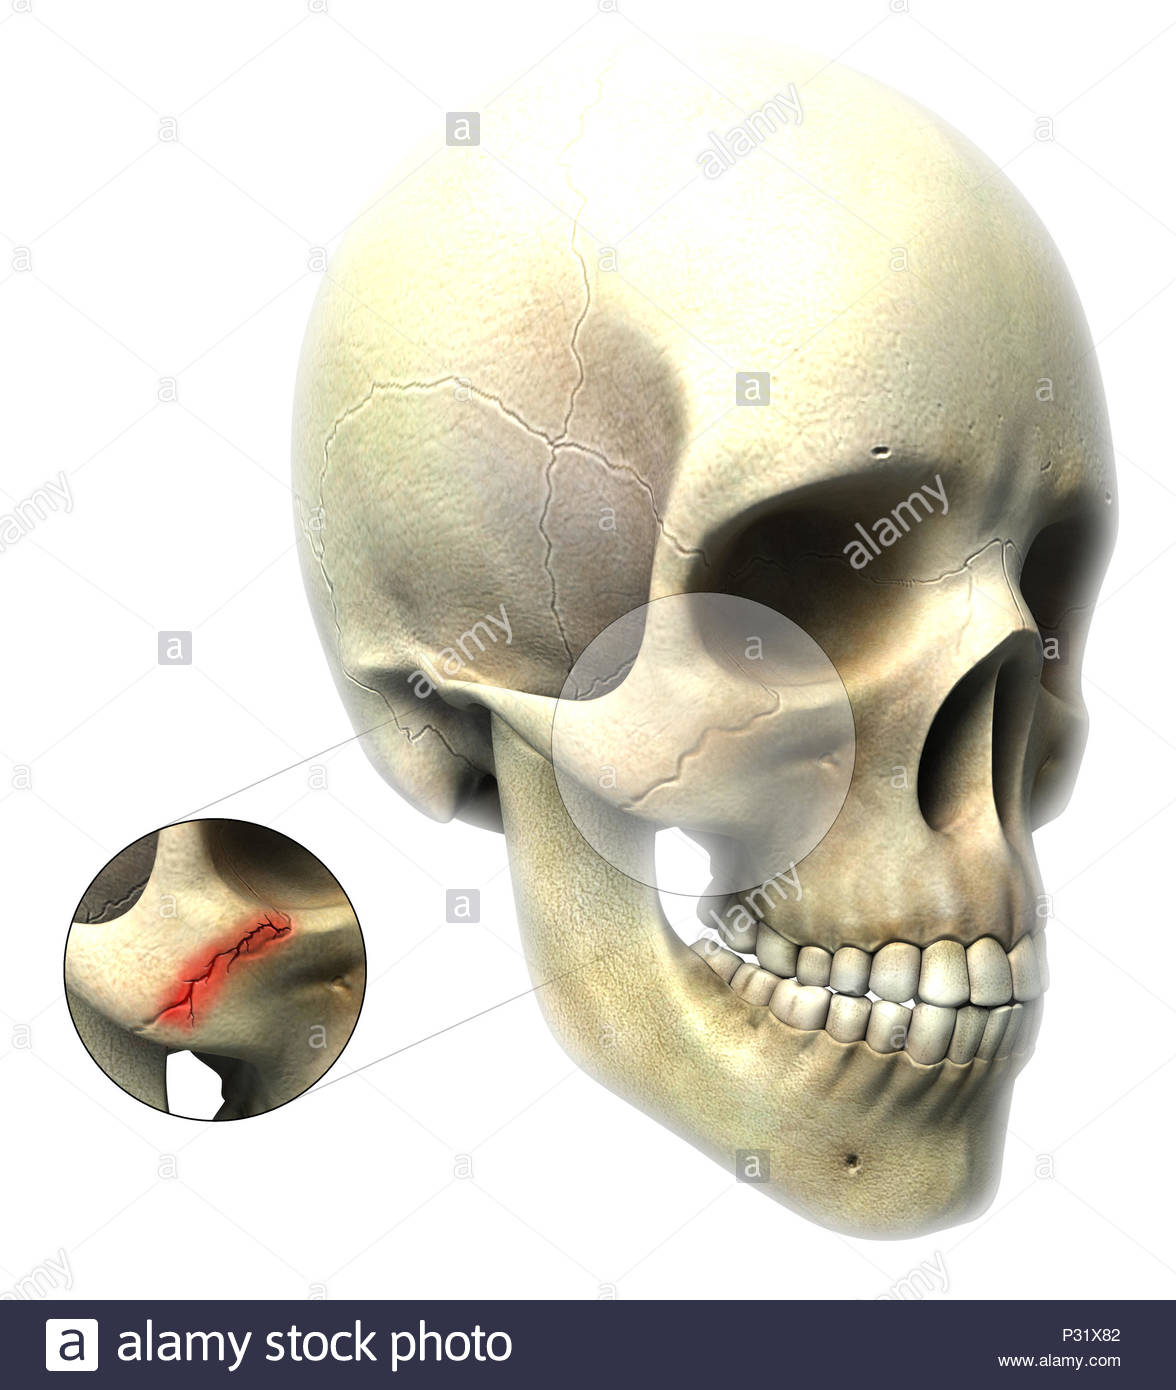 Zygomatic Fracture Stock Photo 208410946 Alamy